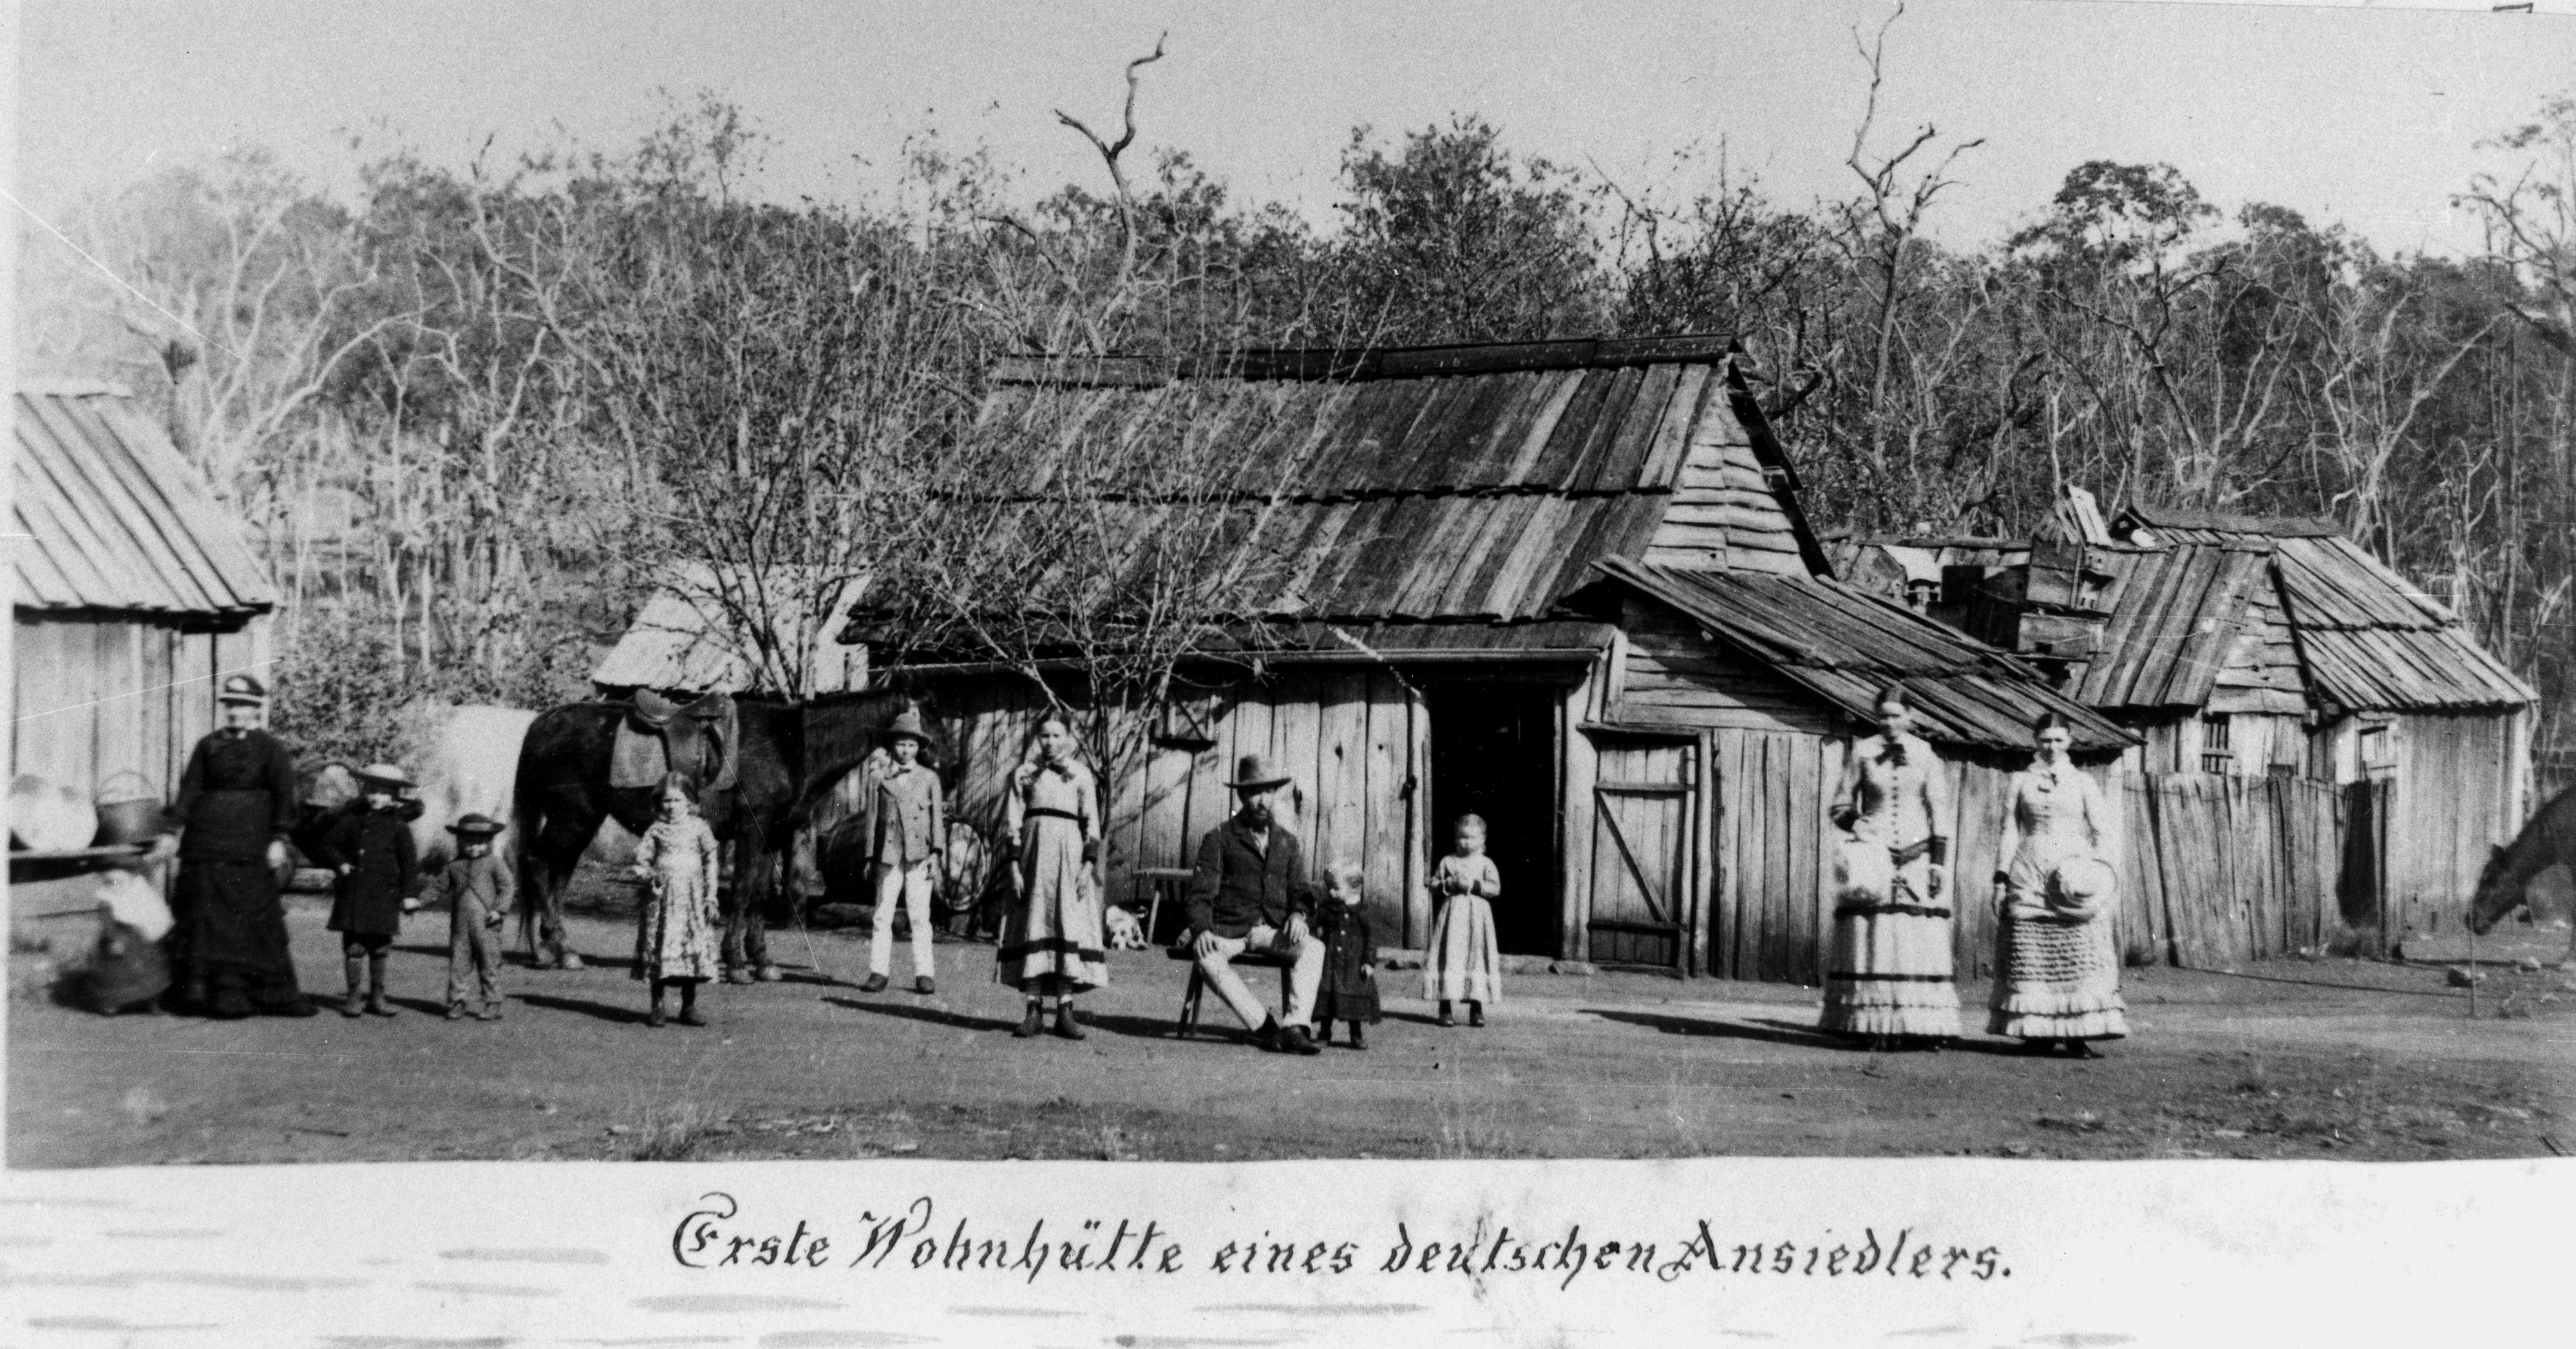 11 people of various ages standing in front of a wooden house and a horse